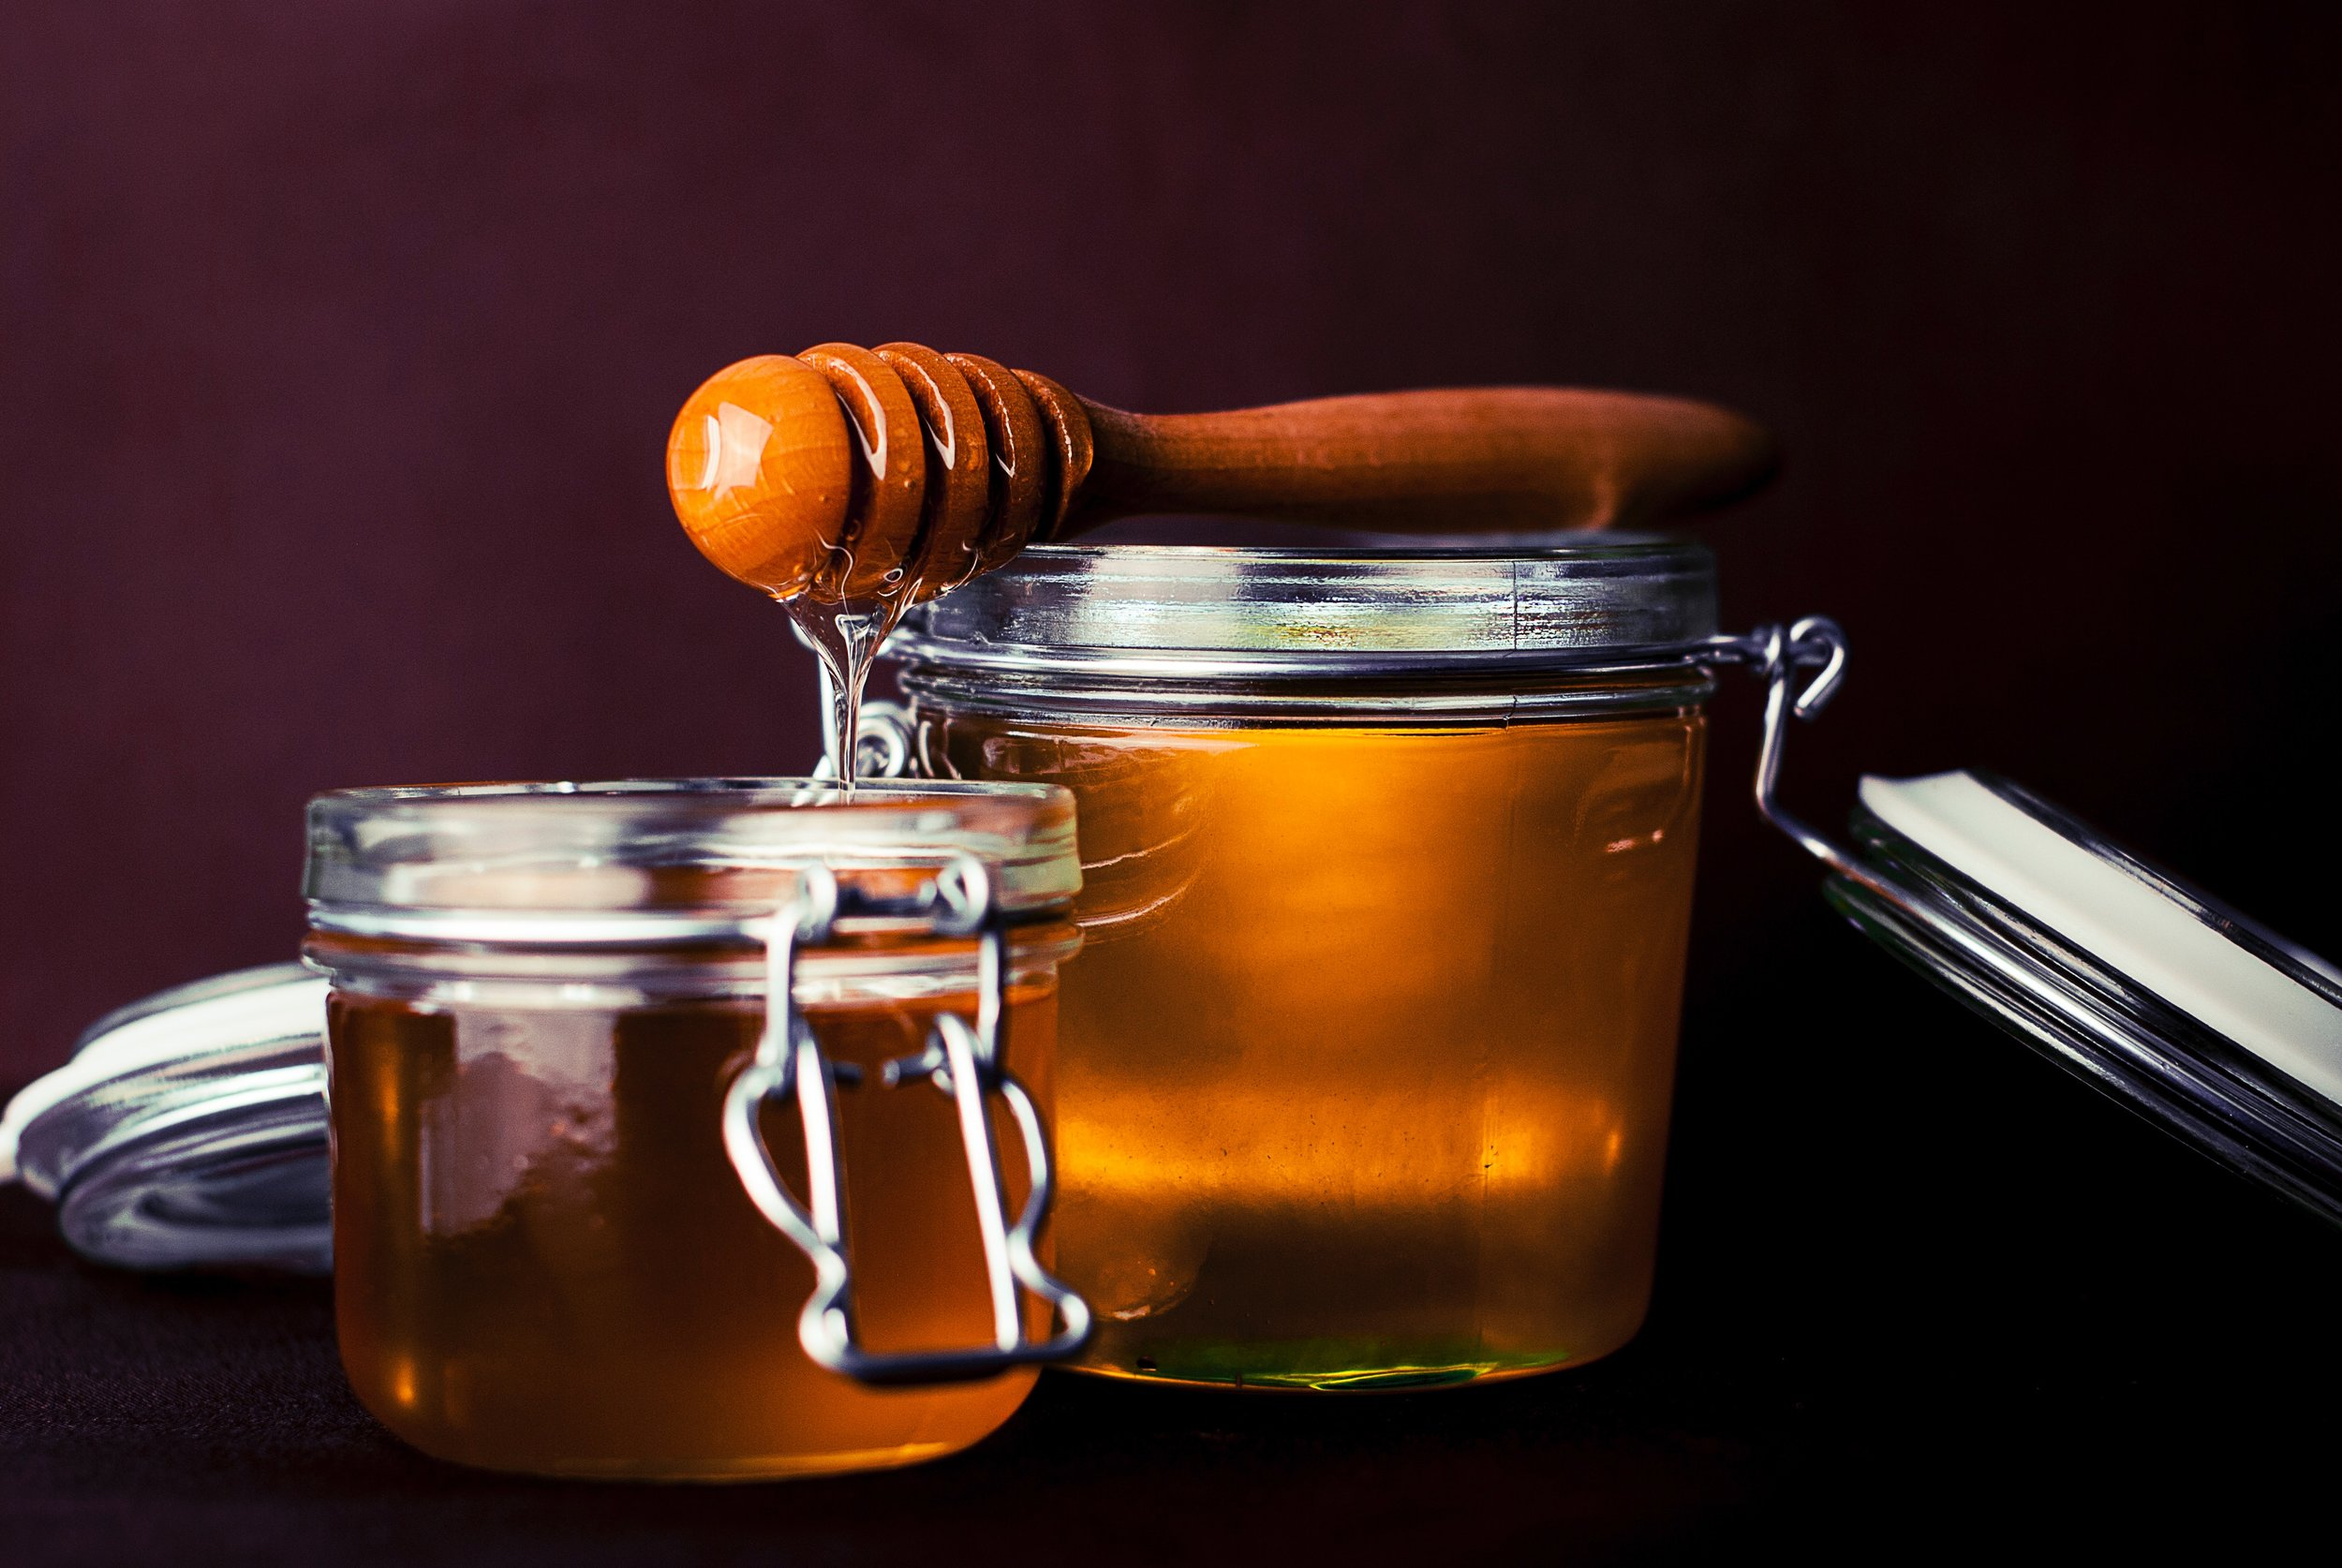 glass-honey-jar-8257.jpg